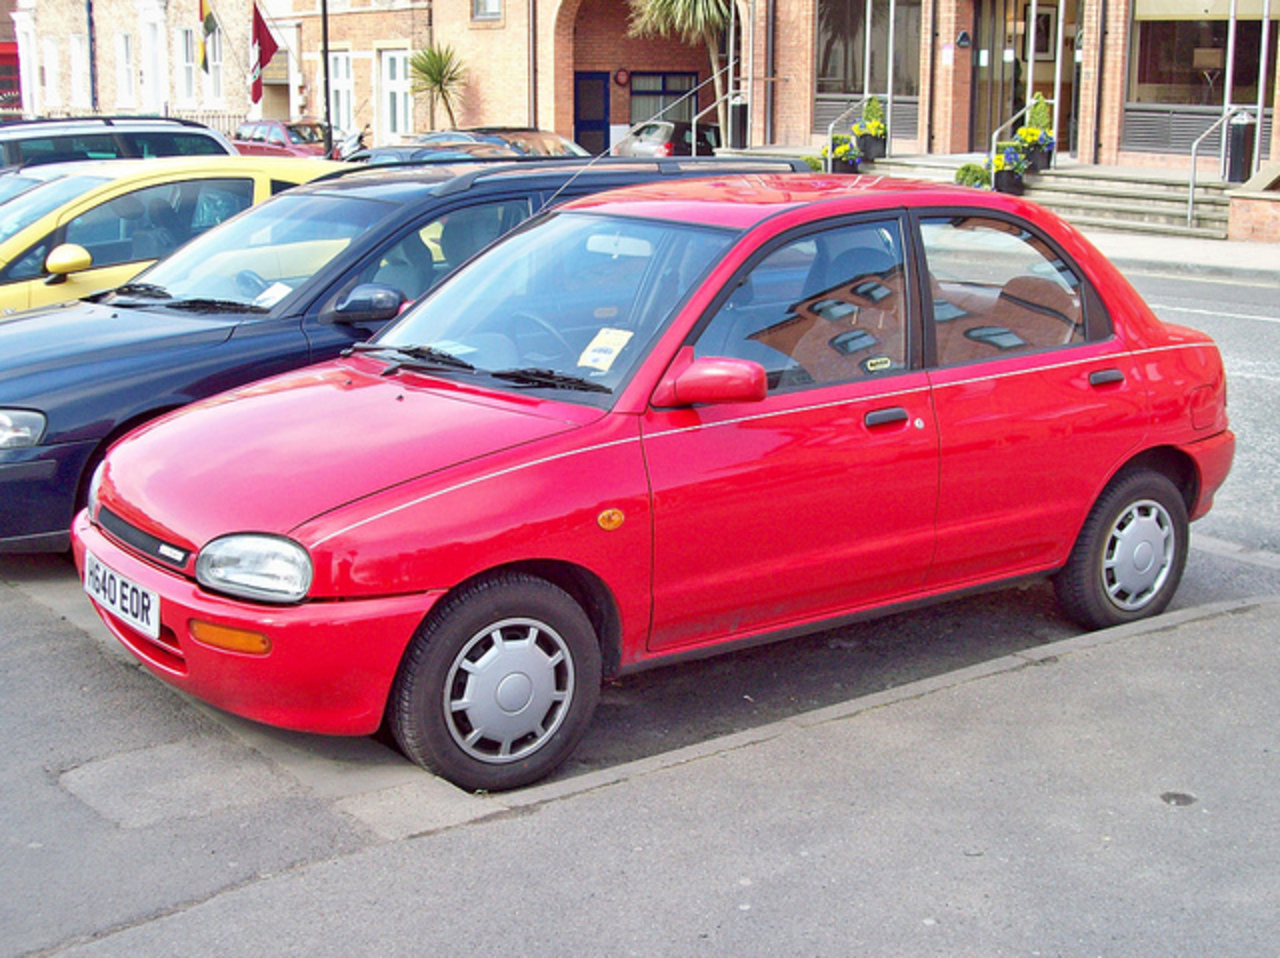 45 Mazda 121 (Top Hat) (1991) | Flickr - Photo Sharing!